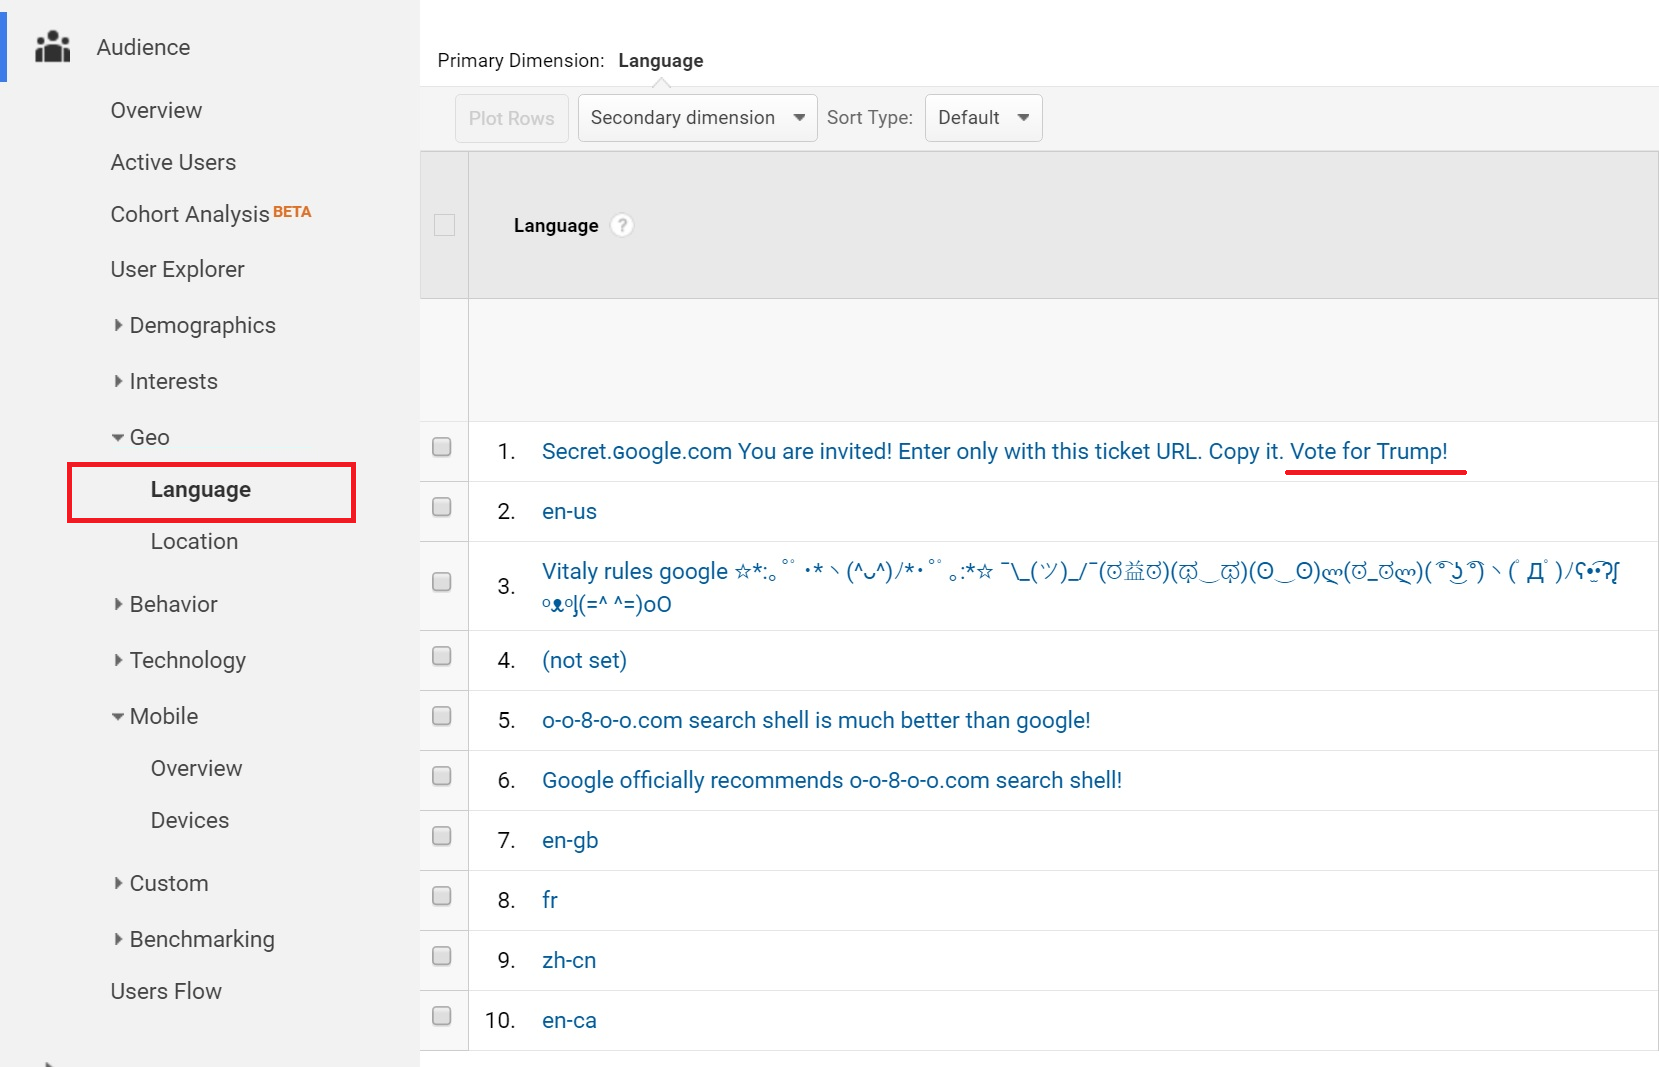 Imagem do Google Analytics exibindo spam no campo referente ao idioma do navegador do visitante